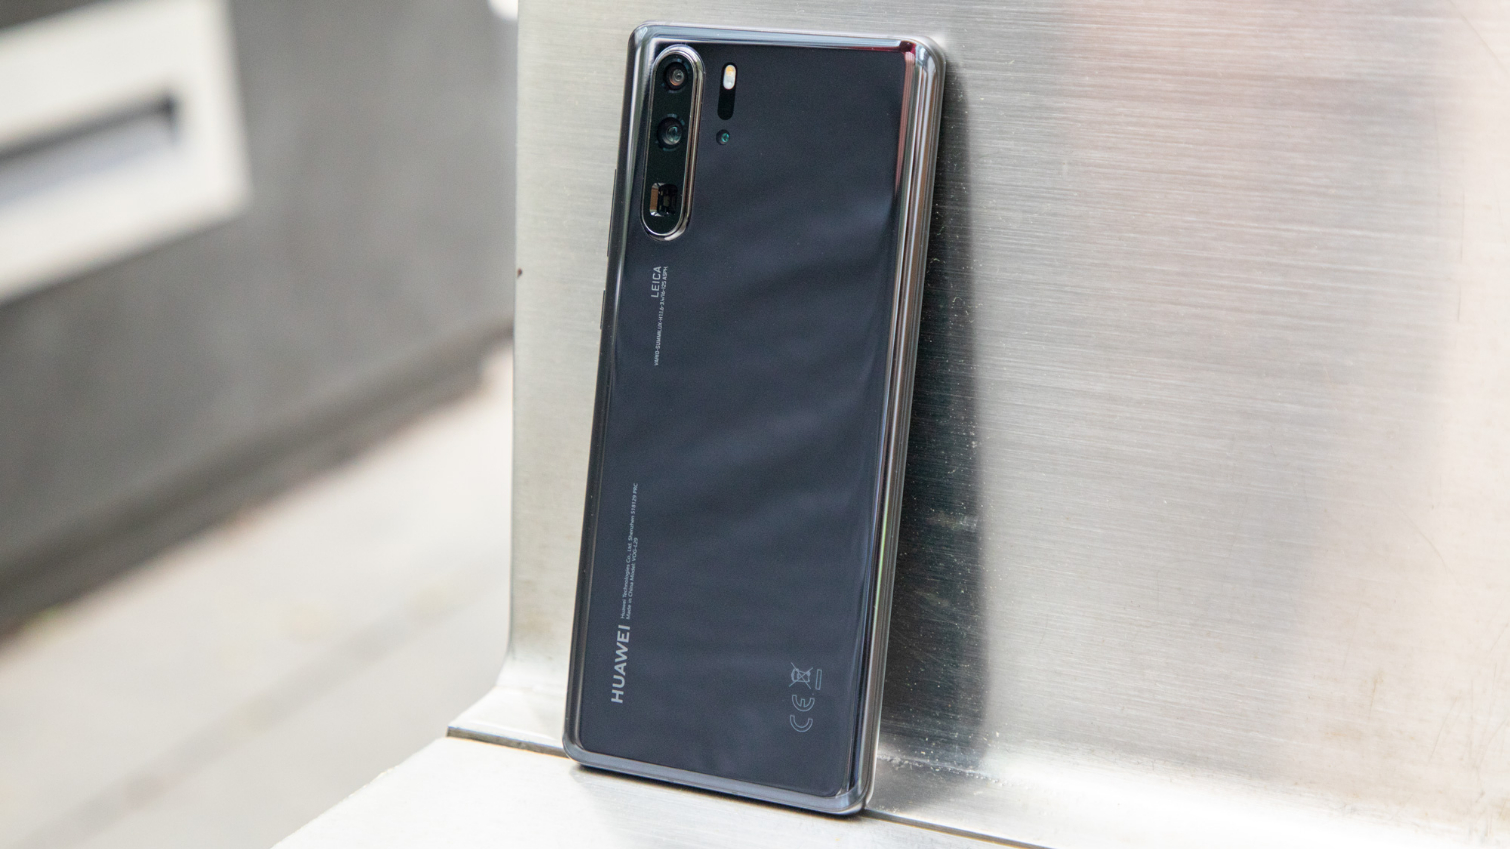 Huawei P30 Pro Review: A Photography Revolution | Tom's Guide